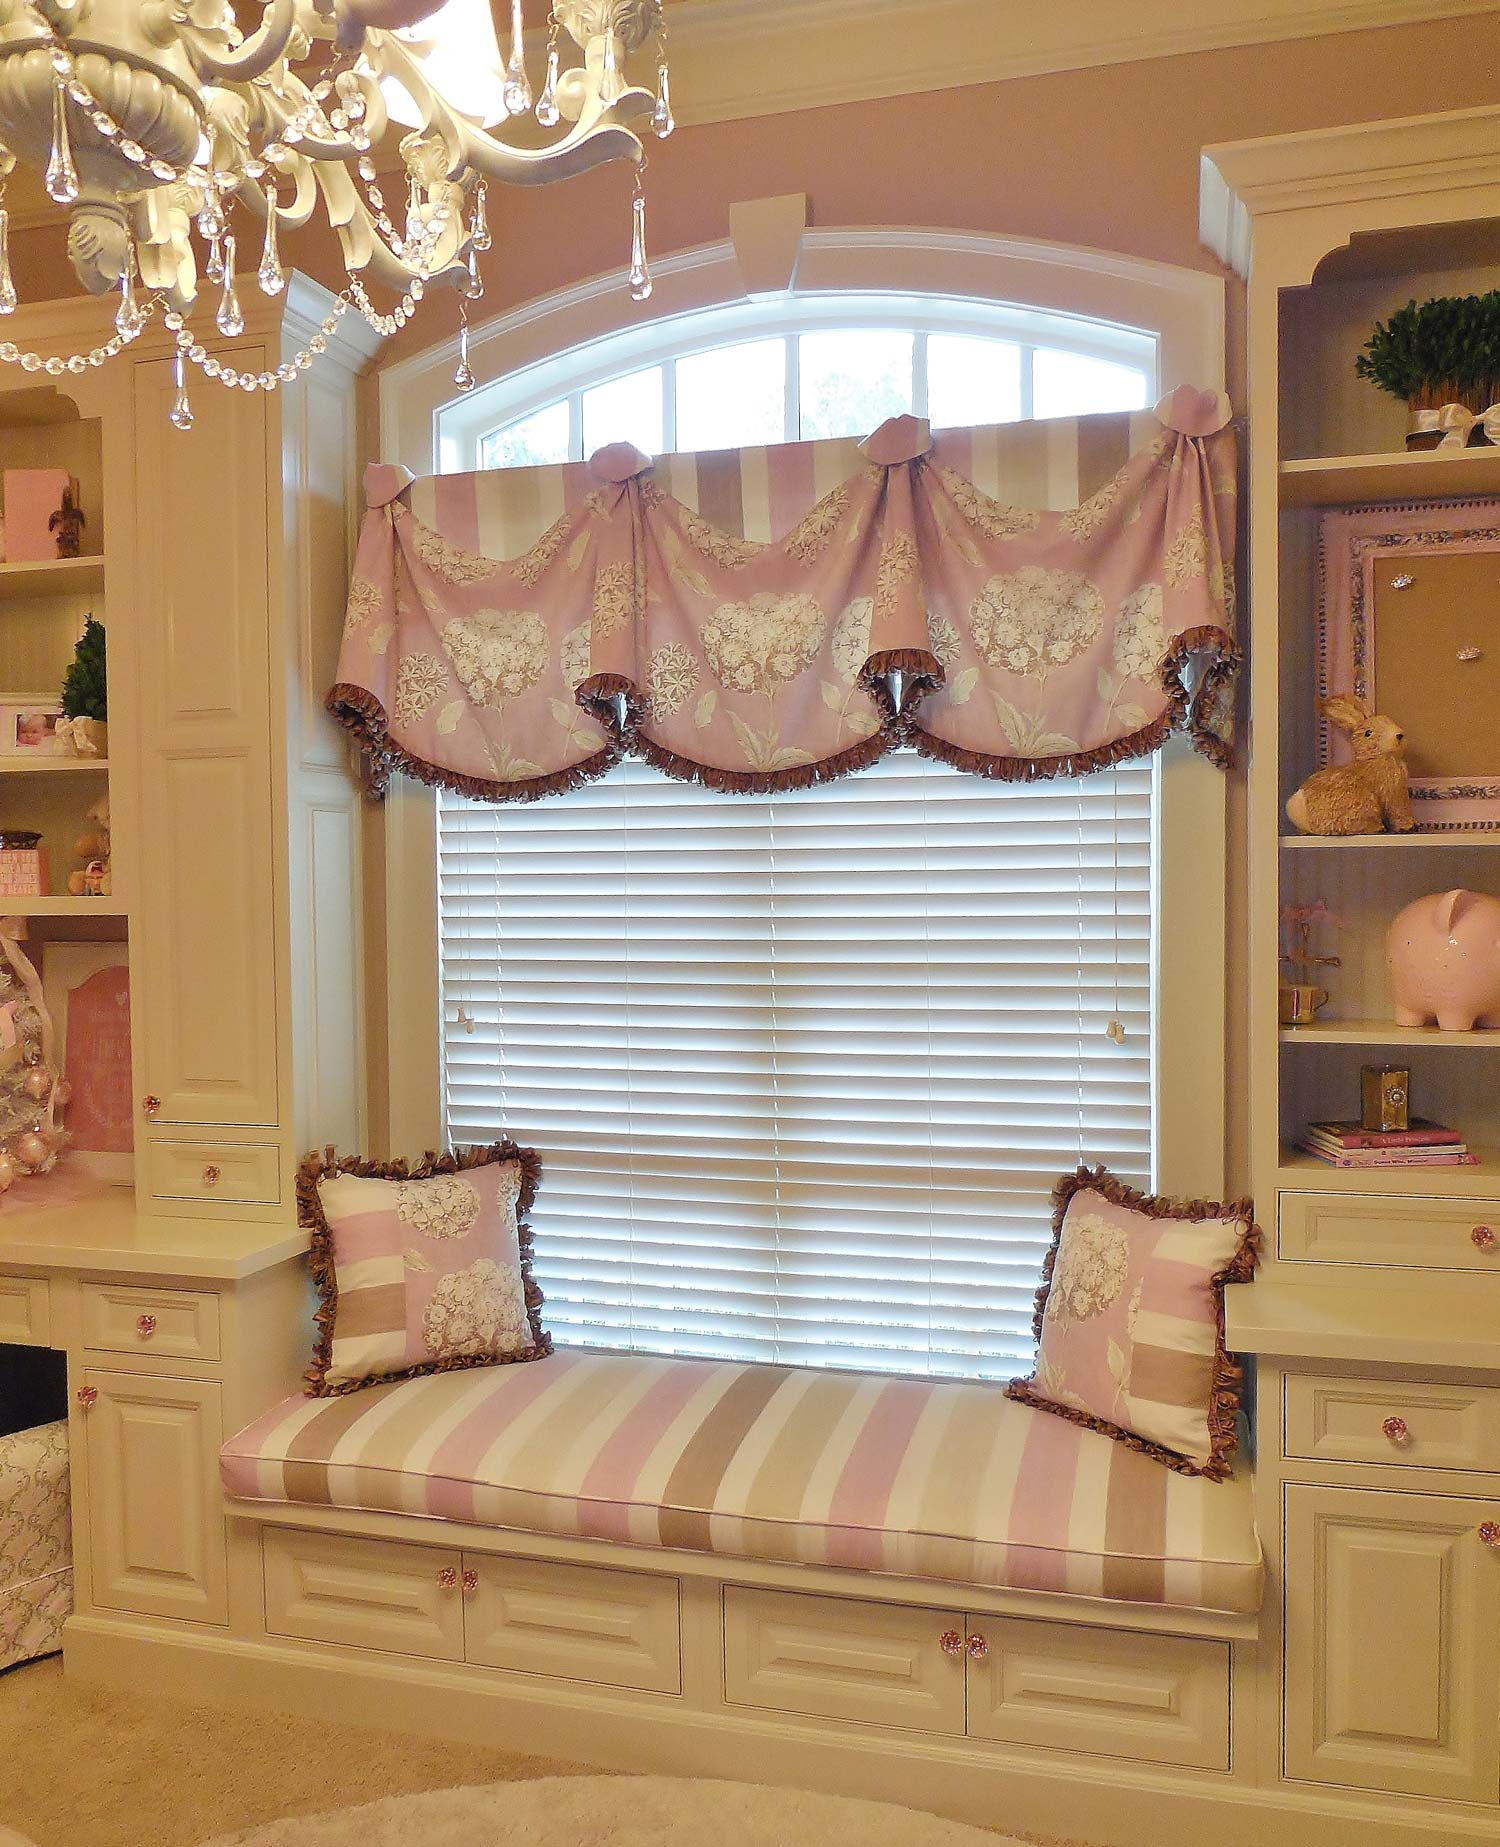 bench-cushion throw pillows valance